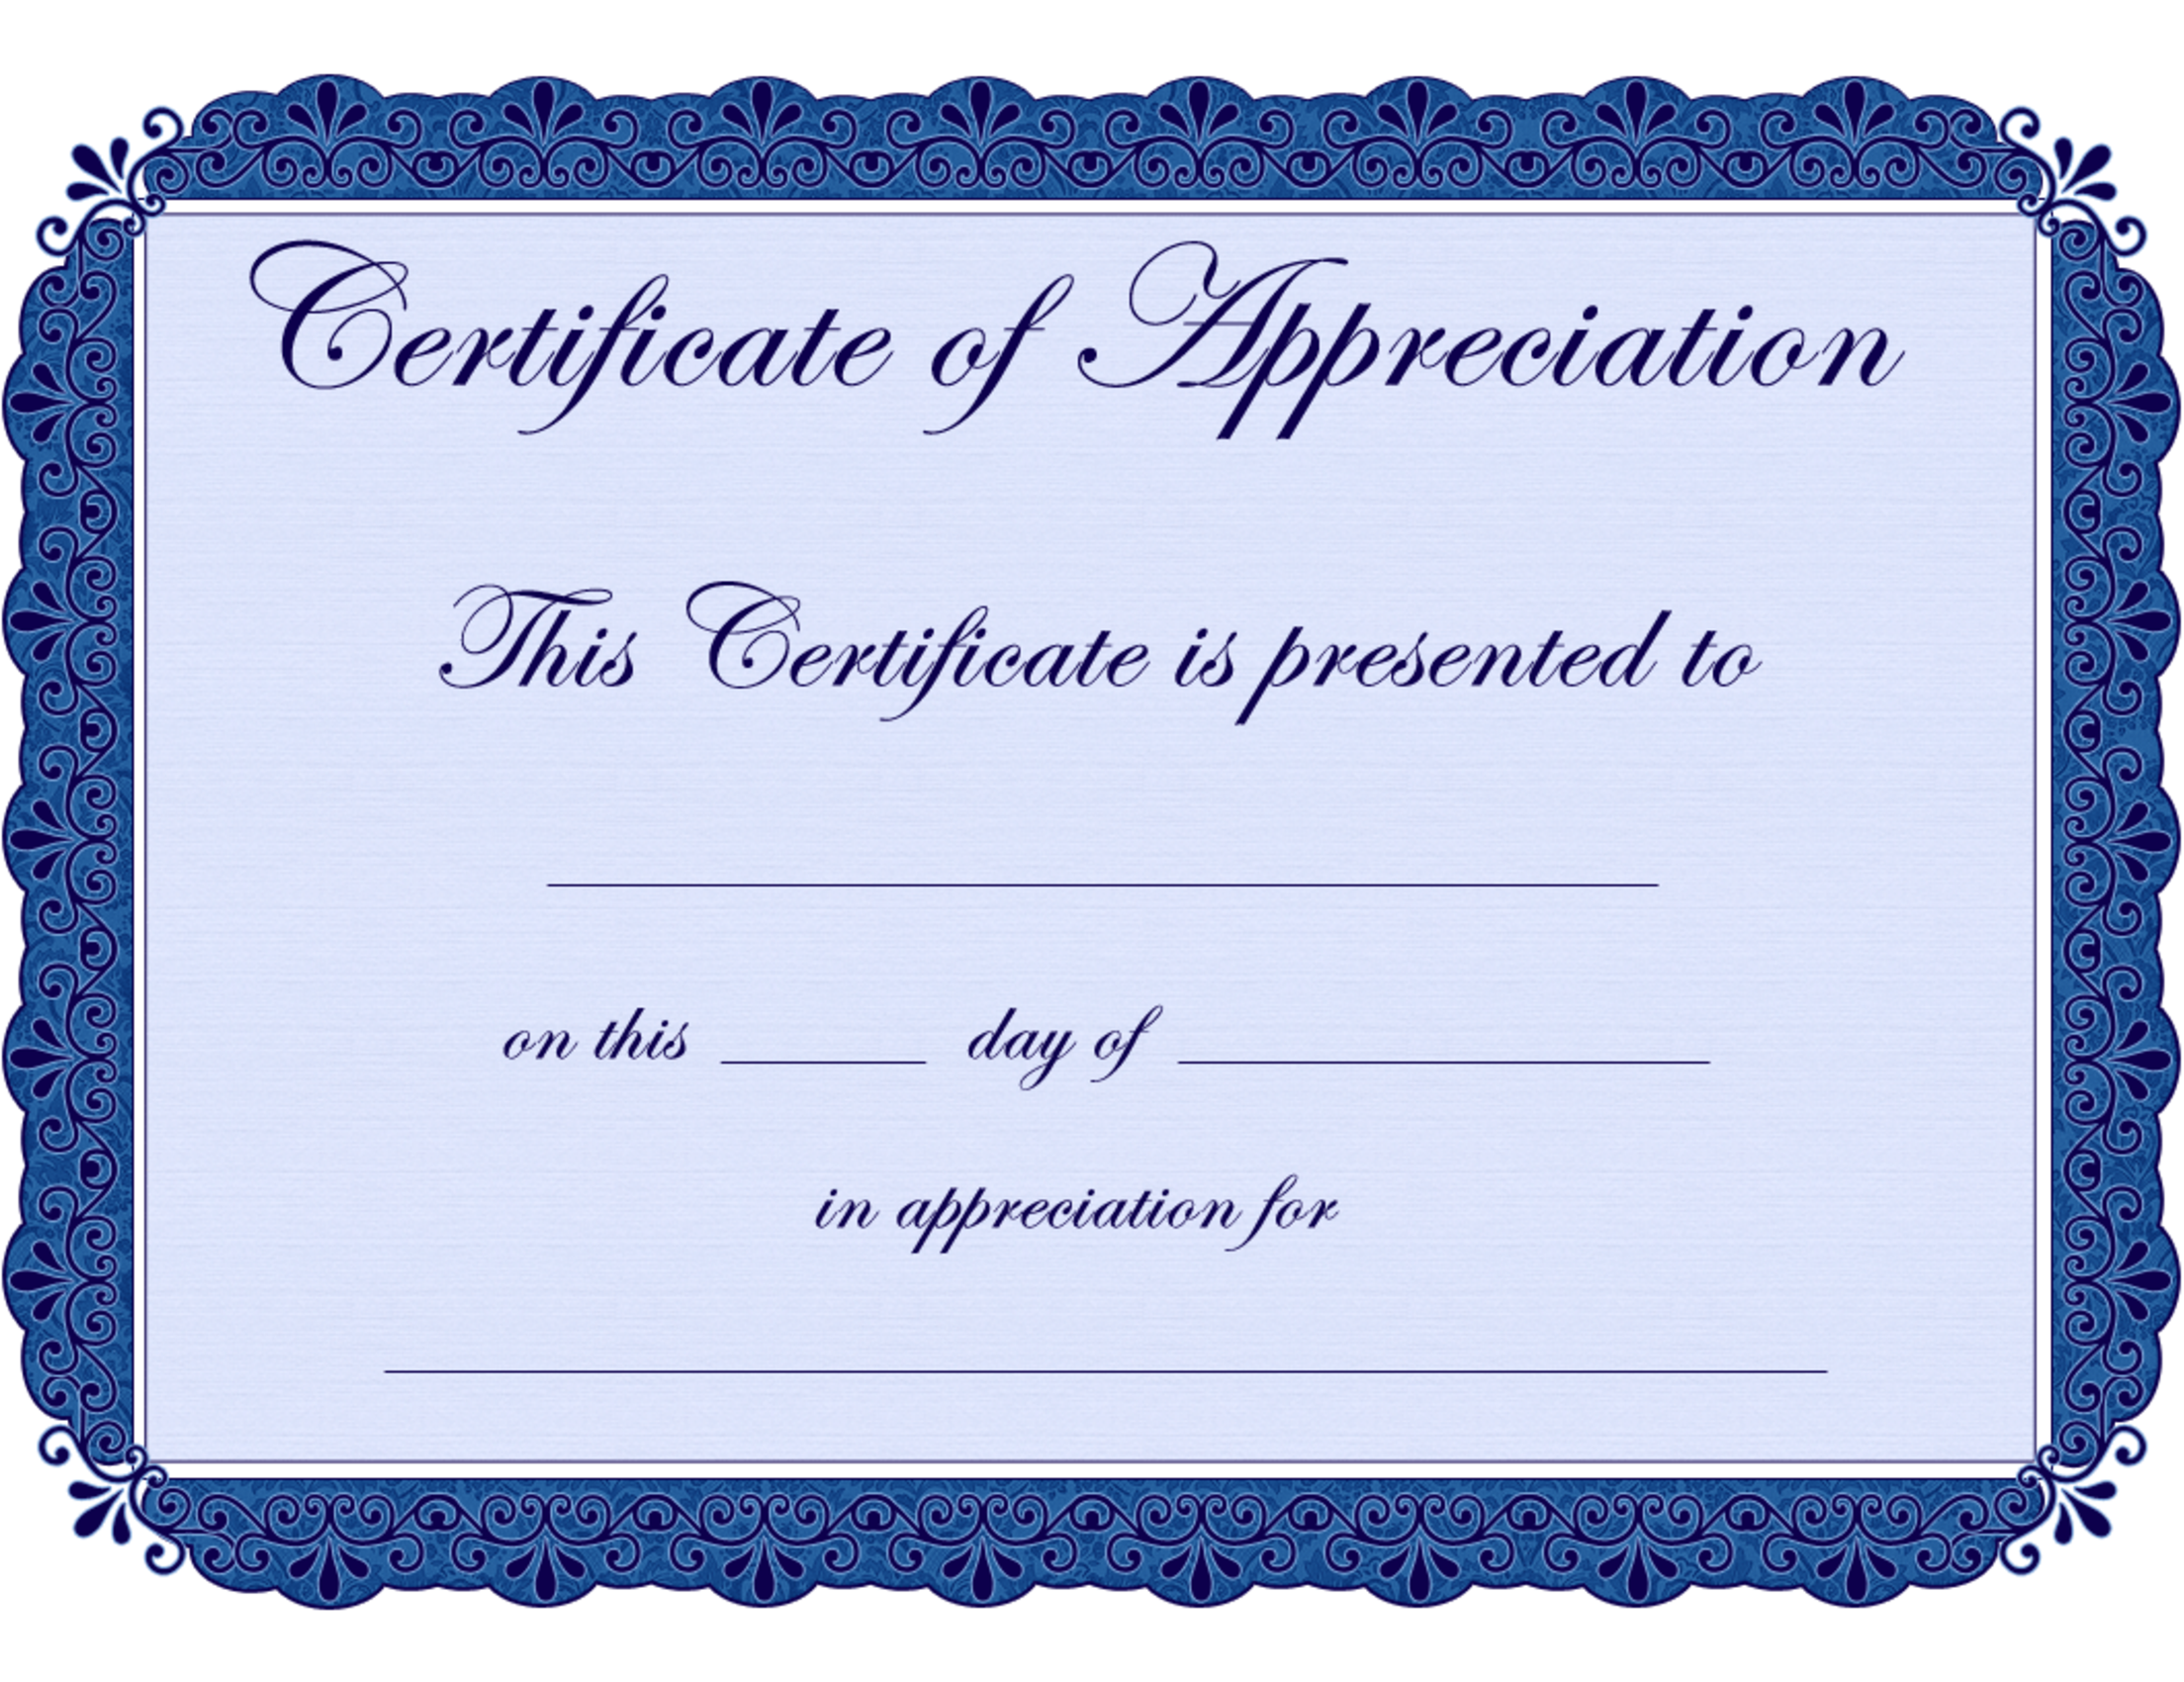 Free printable certificates certificate of appreciation free printable certificates certificate of appreciation certificate yadclub Gallery